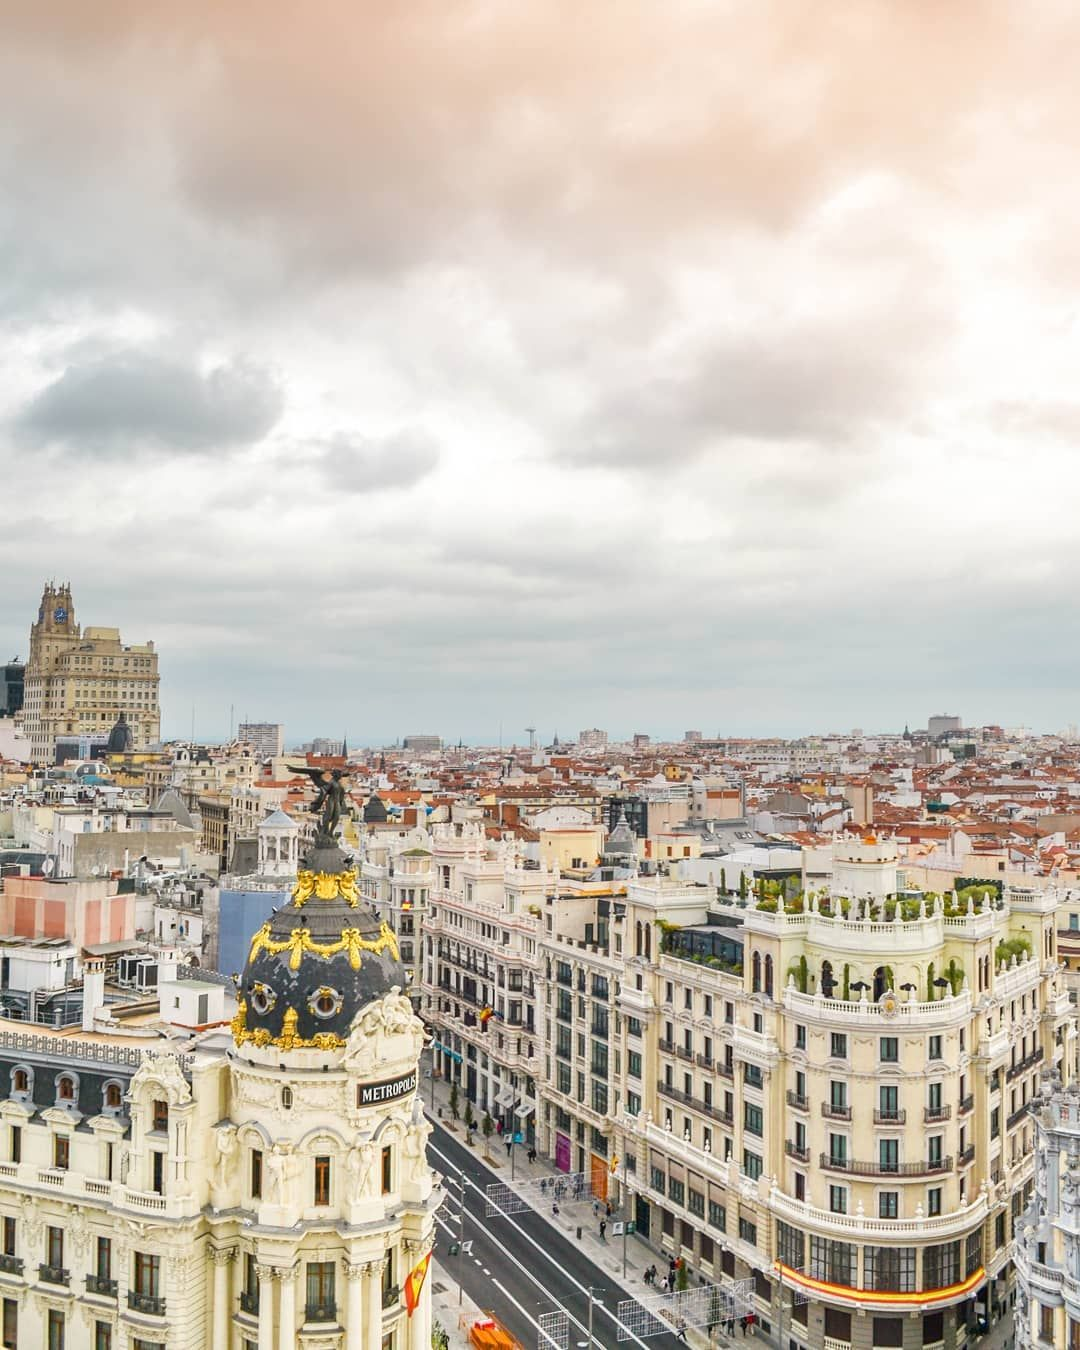 Madrid Spain Travelling Also Means To Us Appreciating Colours Patterns Beauty We Catched This Panoramic View In 2020 Visit Madrid Travel Spain Travel